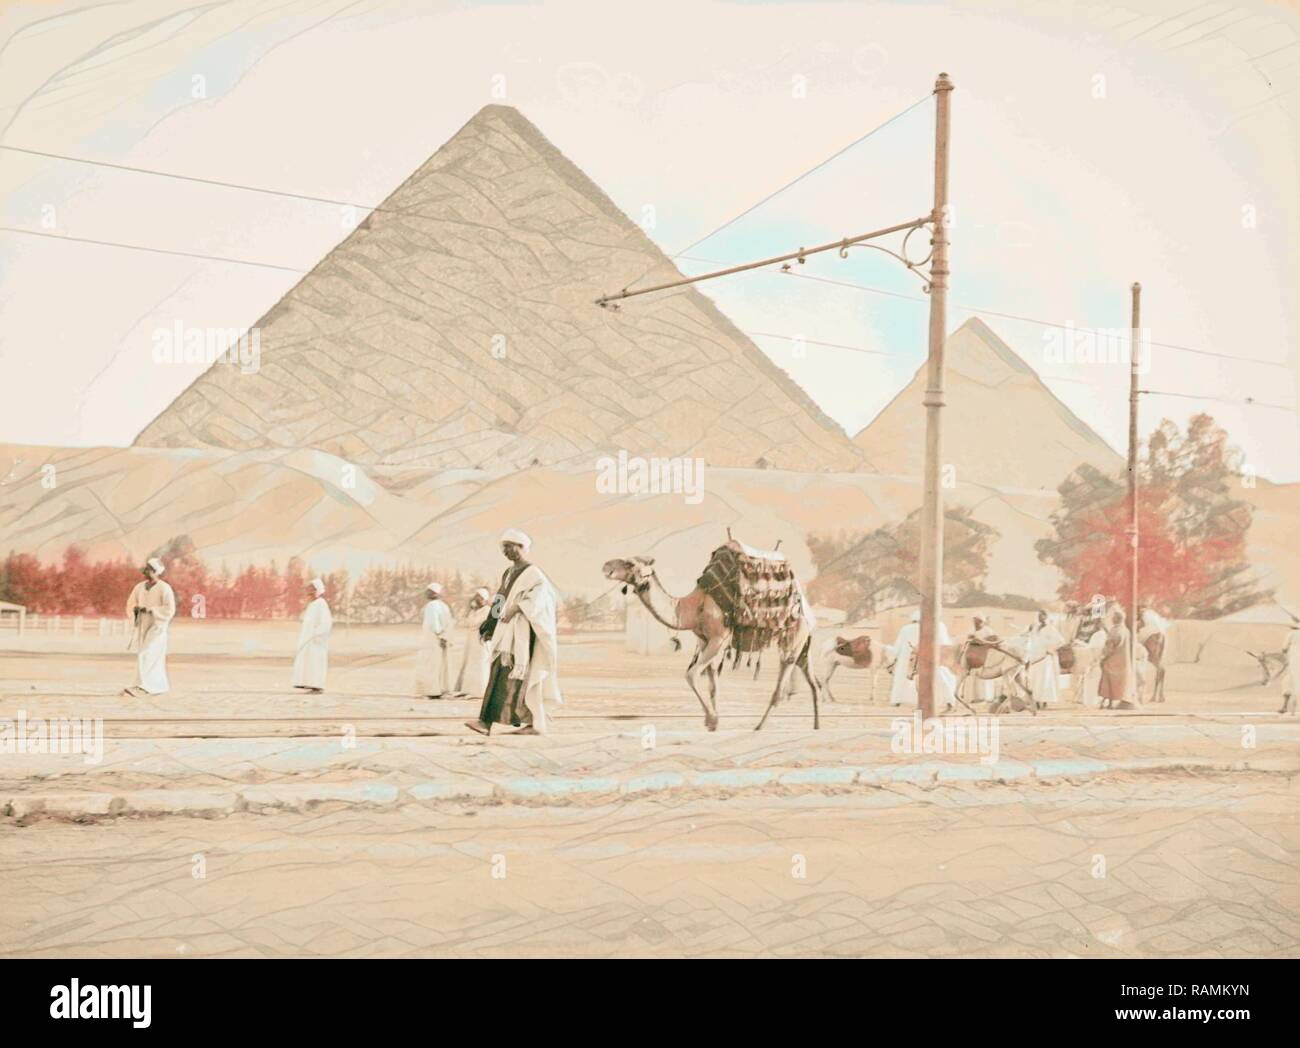 Pyramids of Gizeh. Two great pyramids from end of train line. 1934, Egypt, Jīzah, Jizah. Reimagined by Gibon. Classic reimagined - Stock Image